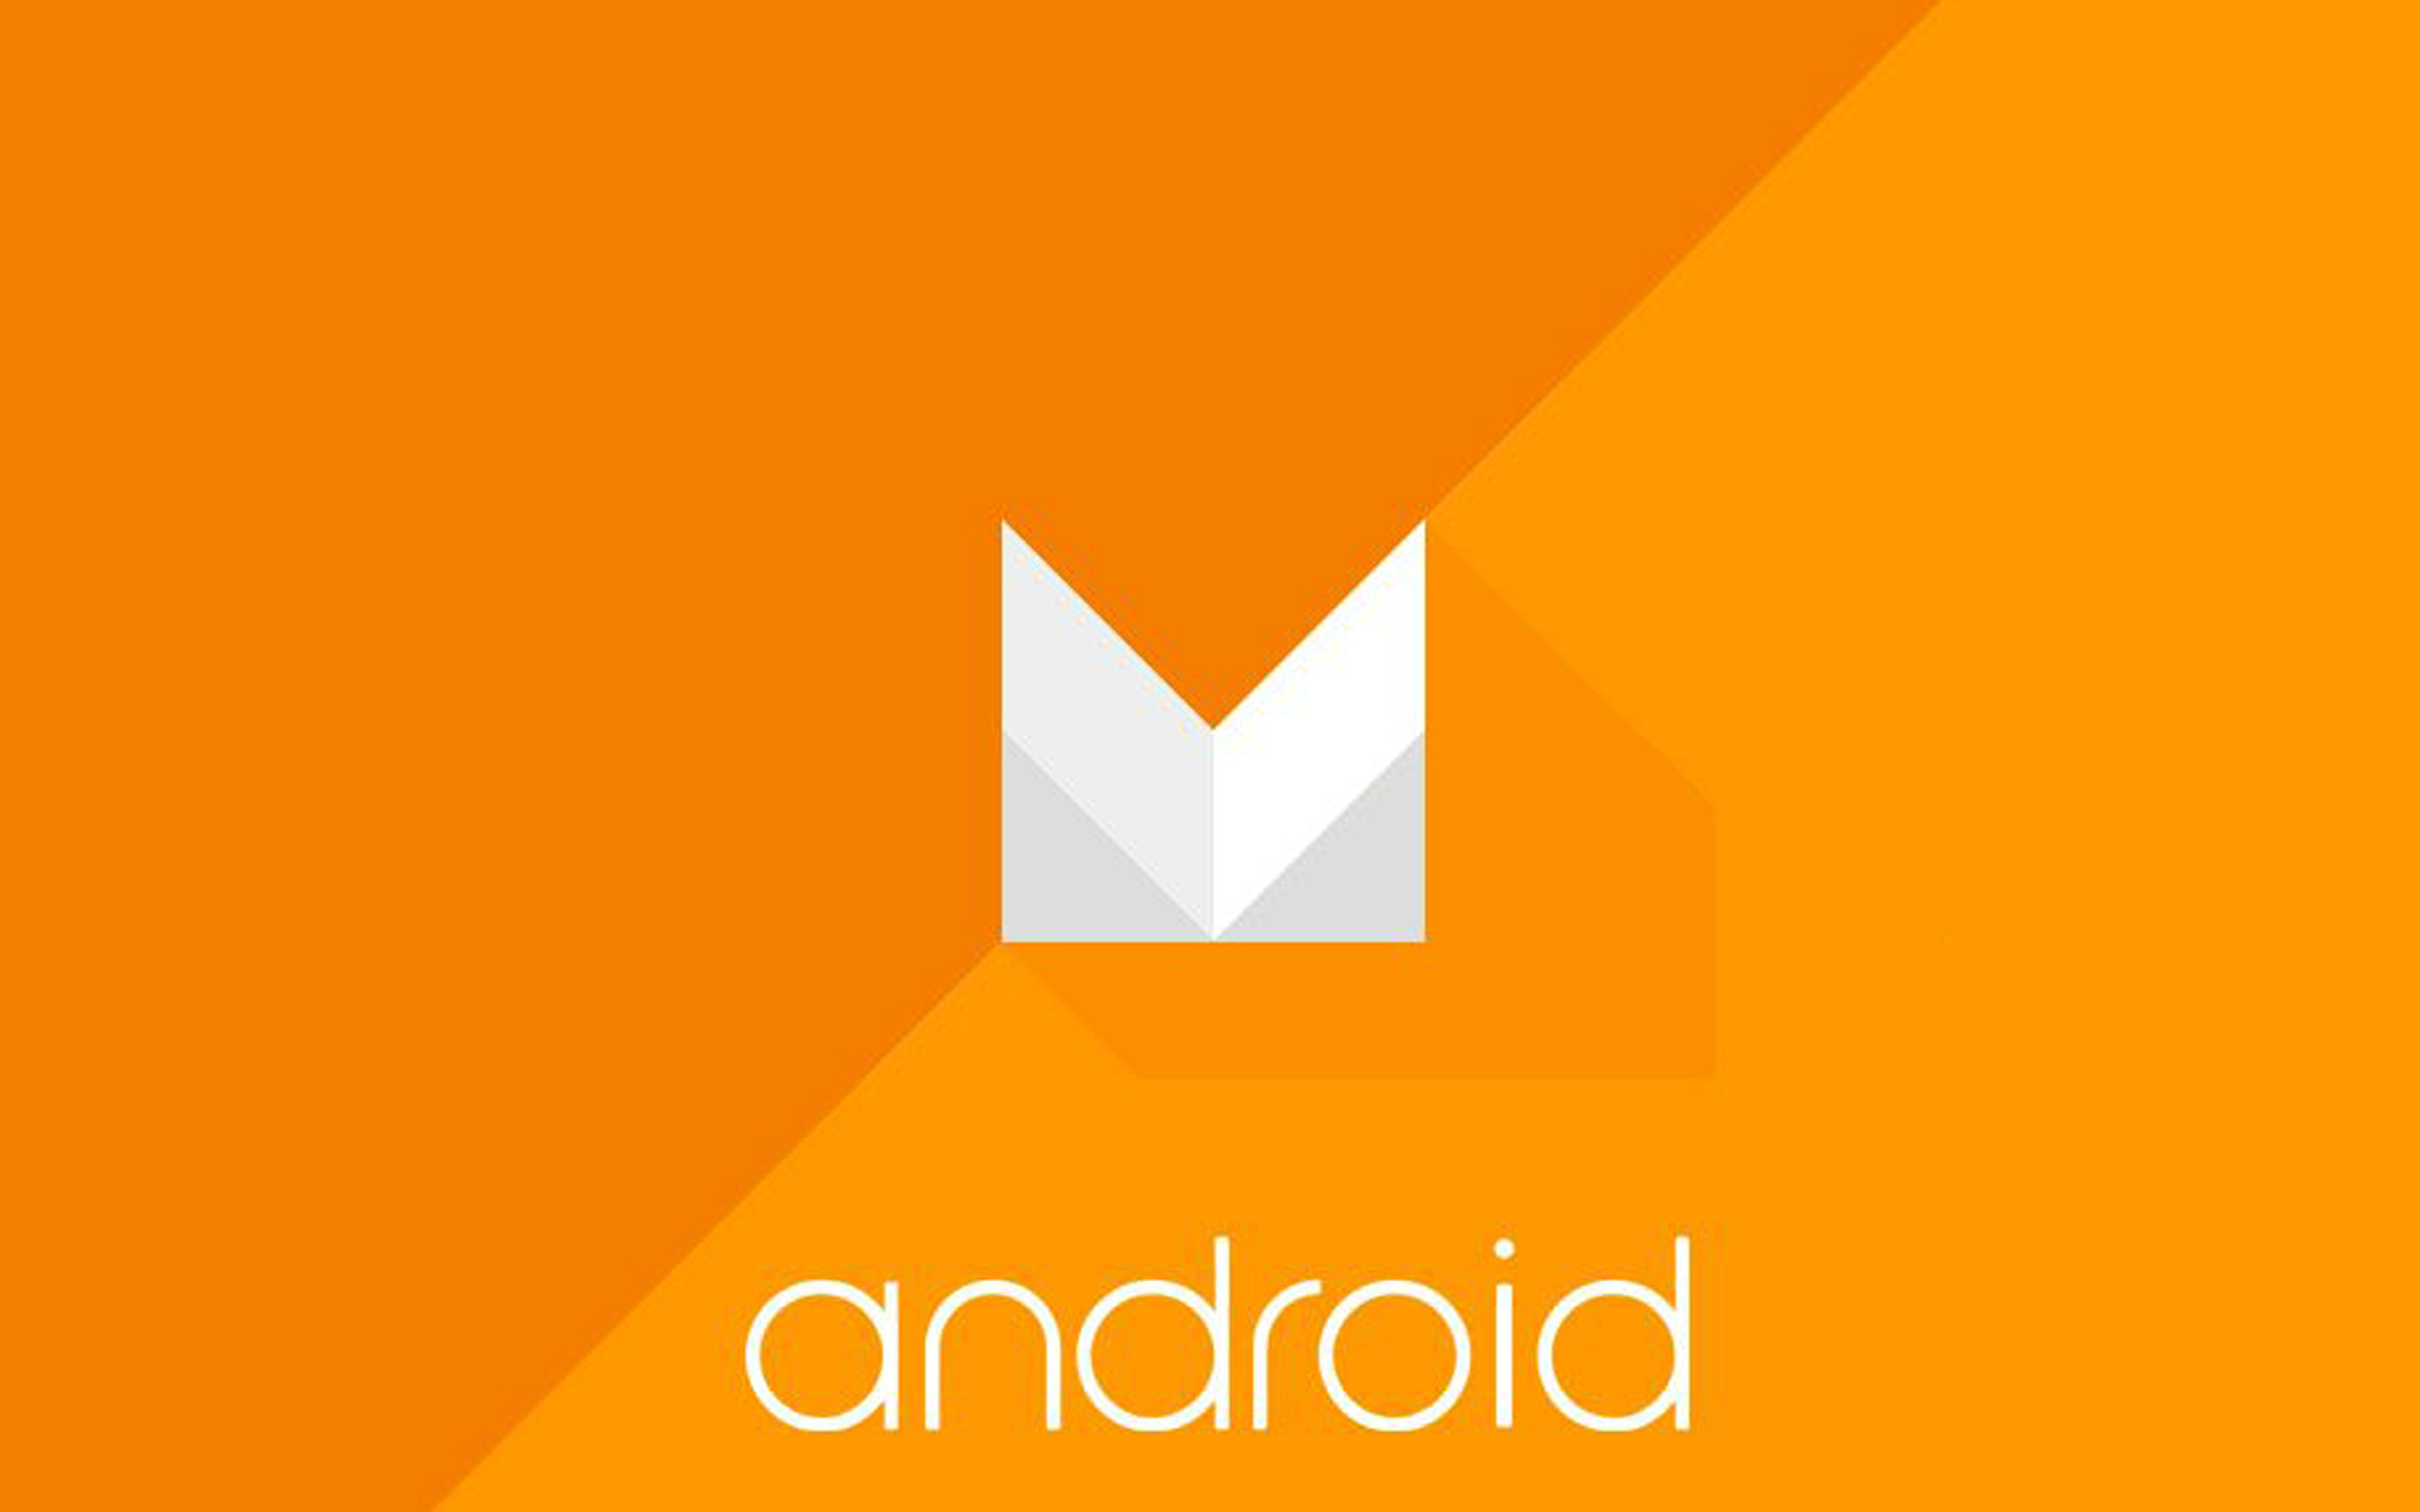 Android Marshmallow Logo HD Wallpapers 2560x1600